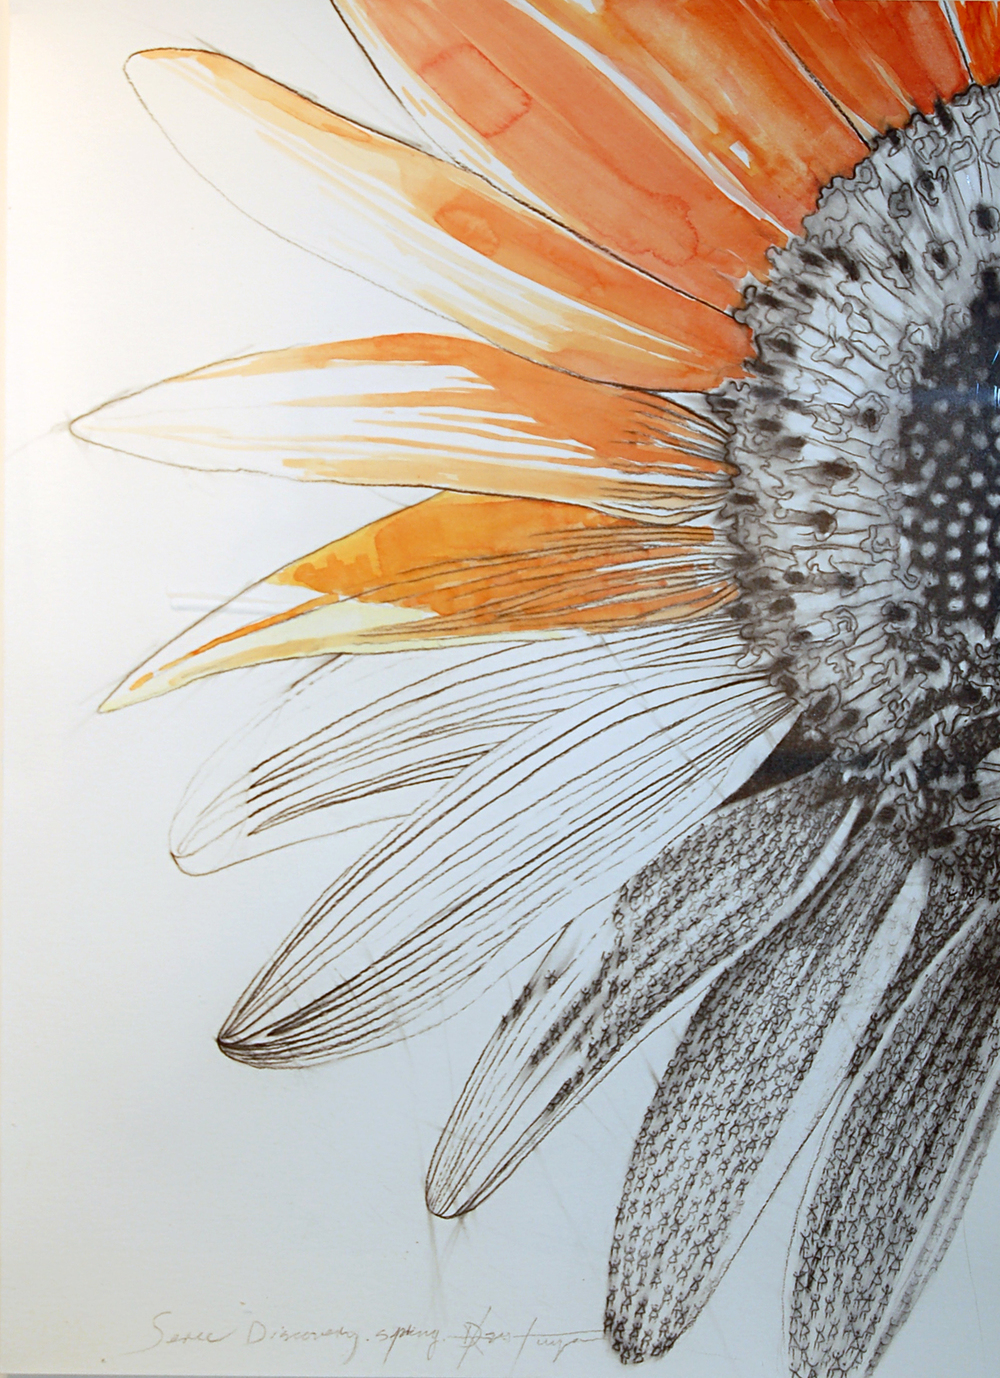 Discovery Series #3 (Flower), Charcoal and Watercolour on Paper, 2014, 45cm x 61cm